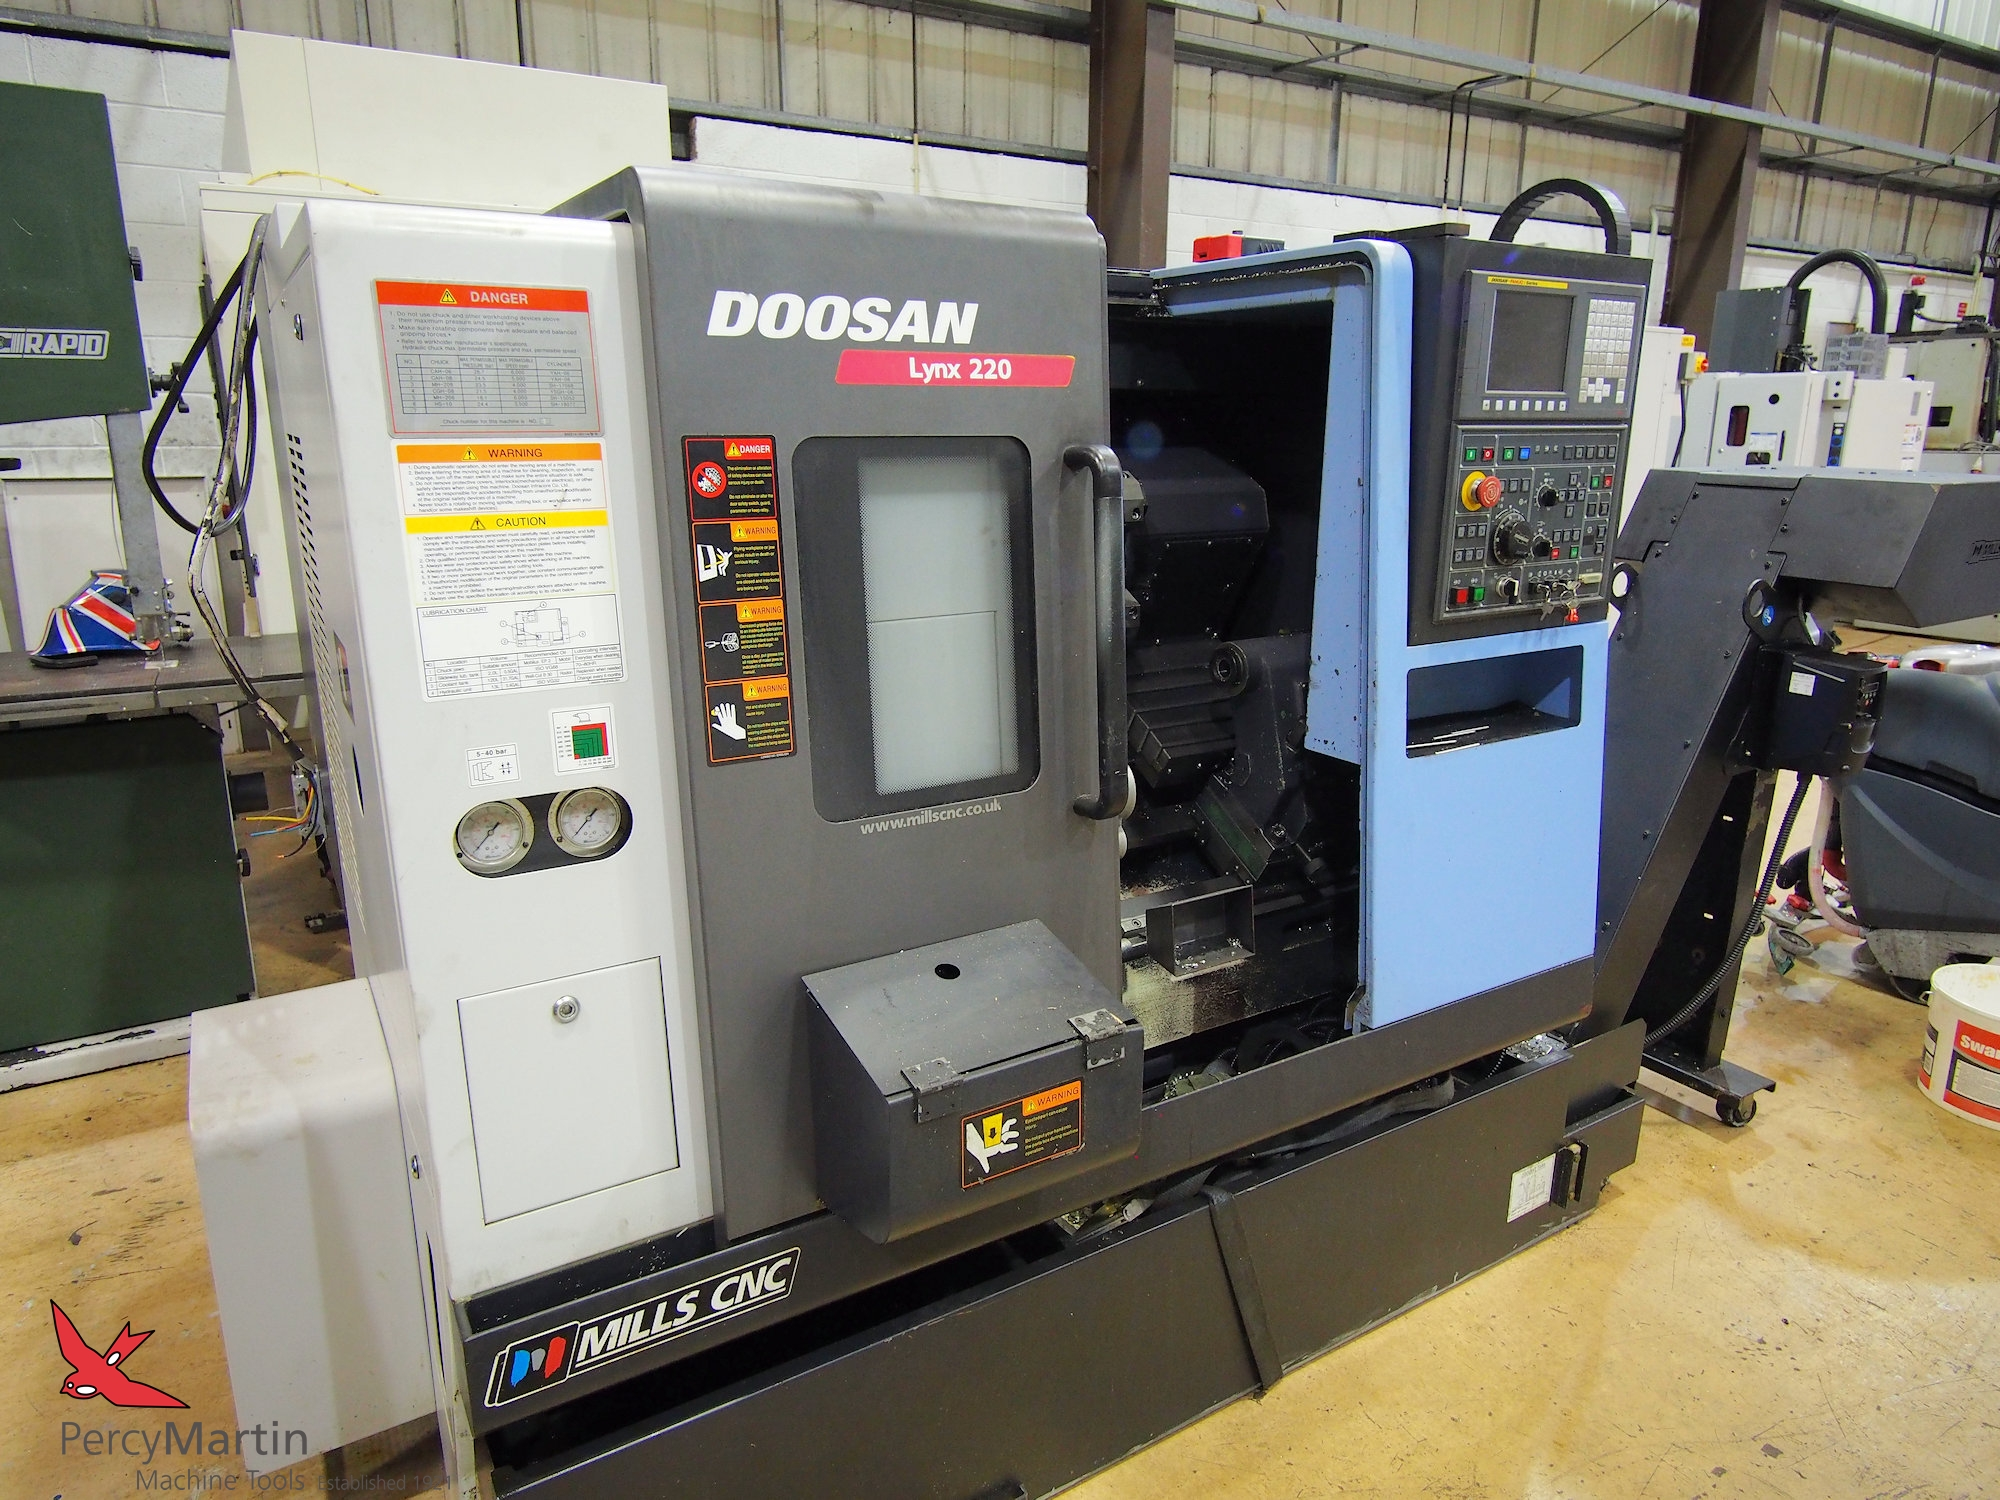 used Doosan Lynx 220B 2013 CNC Lathes for sale | Percy Martin